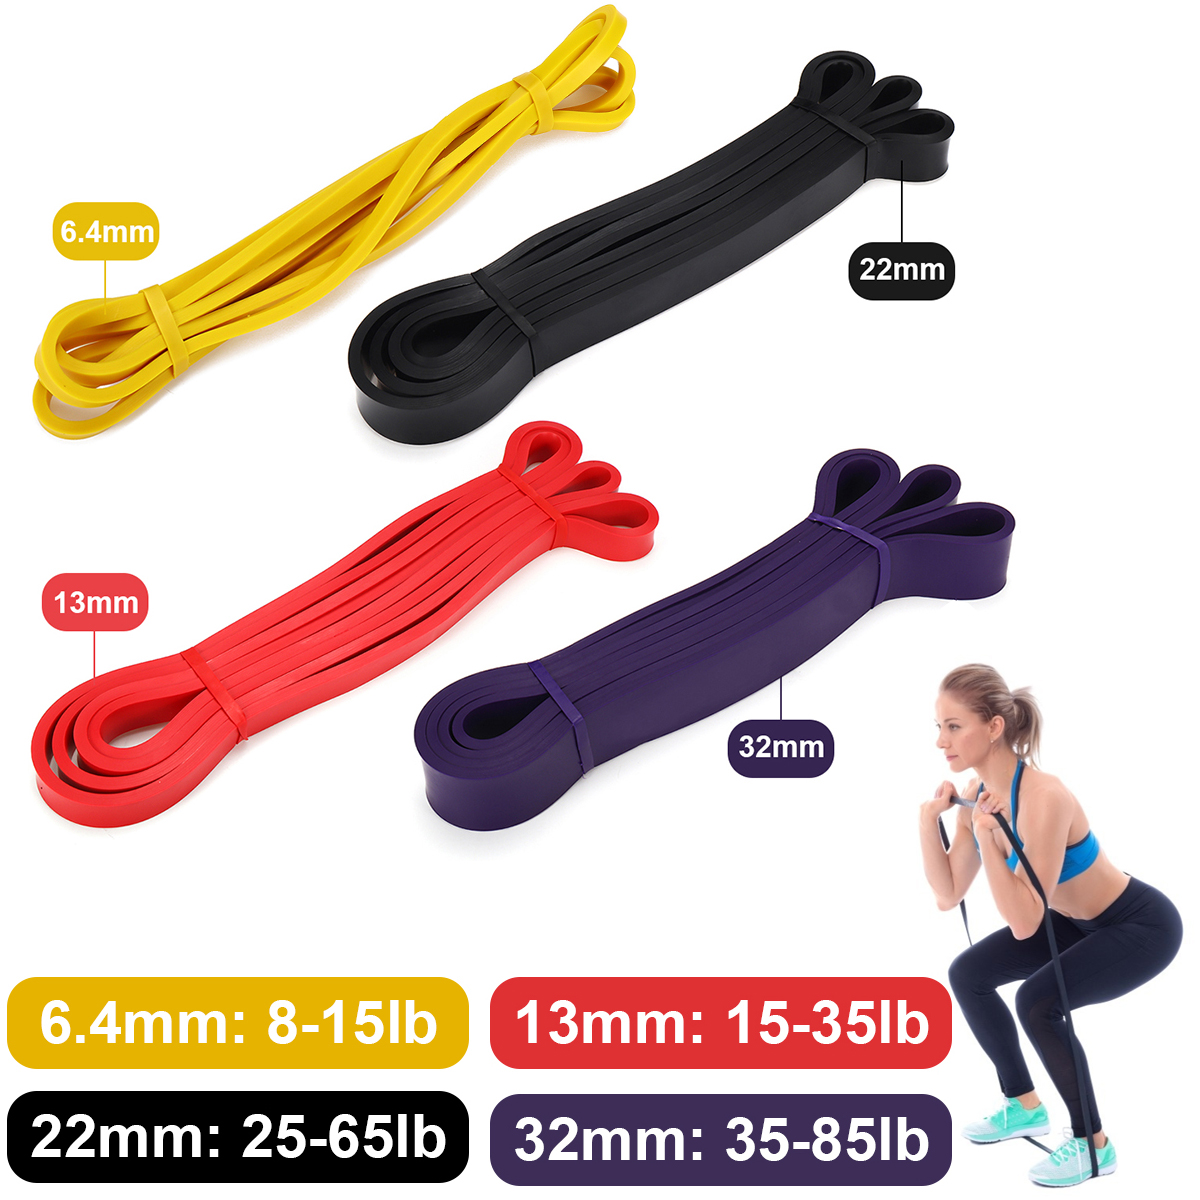 Elastic Resistance Band Exercise Yoga Rubber for Training Pull Rope Loop Strength Fitness Band Workout Home Gym Sport Equipment image